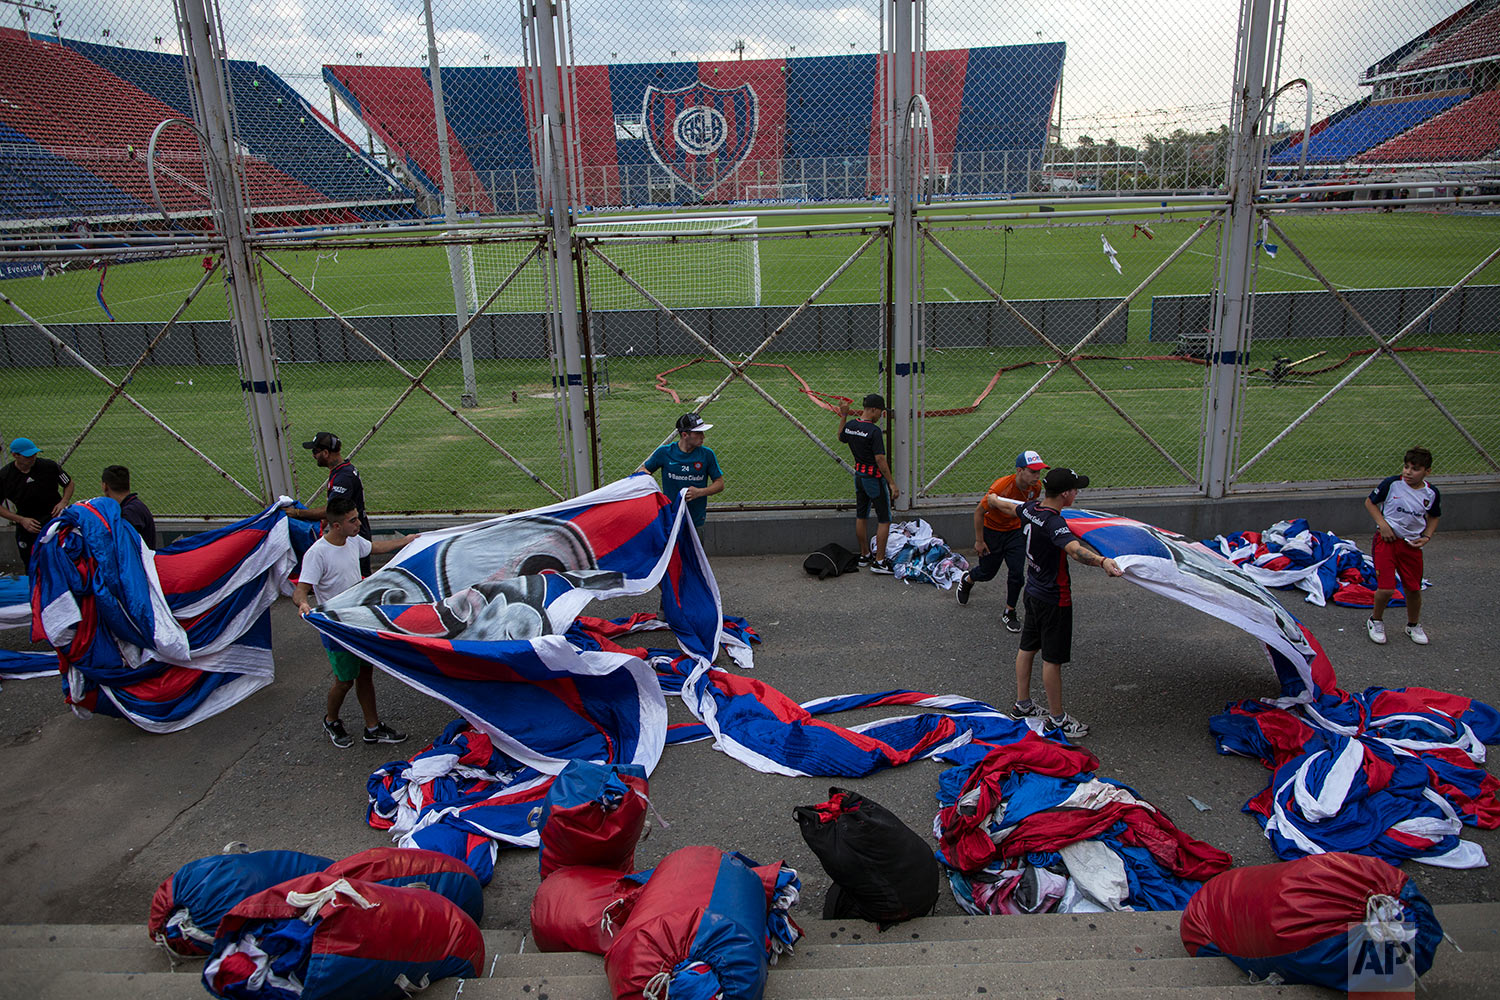 """In this April 11, 2018 photo, San Lorenzo soccer fans from the team's most militant fan base, who call themselves """"La Butteler,"""" unfurl flags in the grandstand hours before the start of a match against Brazil's Atletico Mineiro, in Buenos Aires, Argentina. (AP Photo/Rodrigo Abd)"""